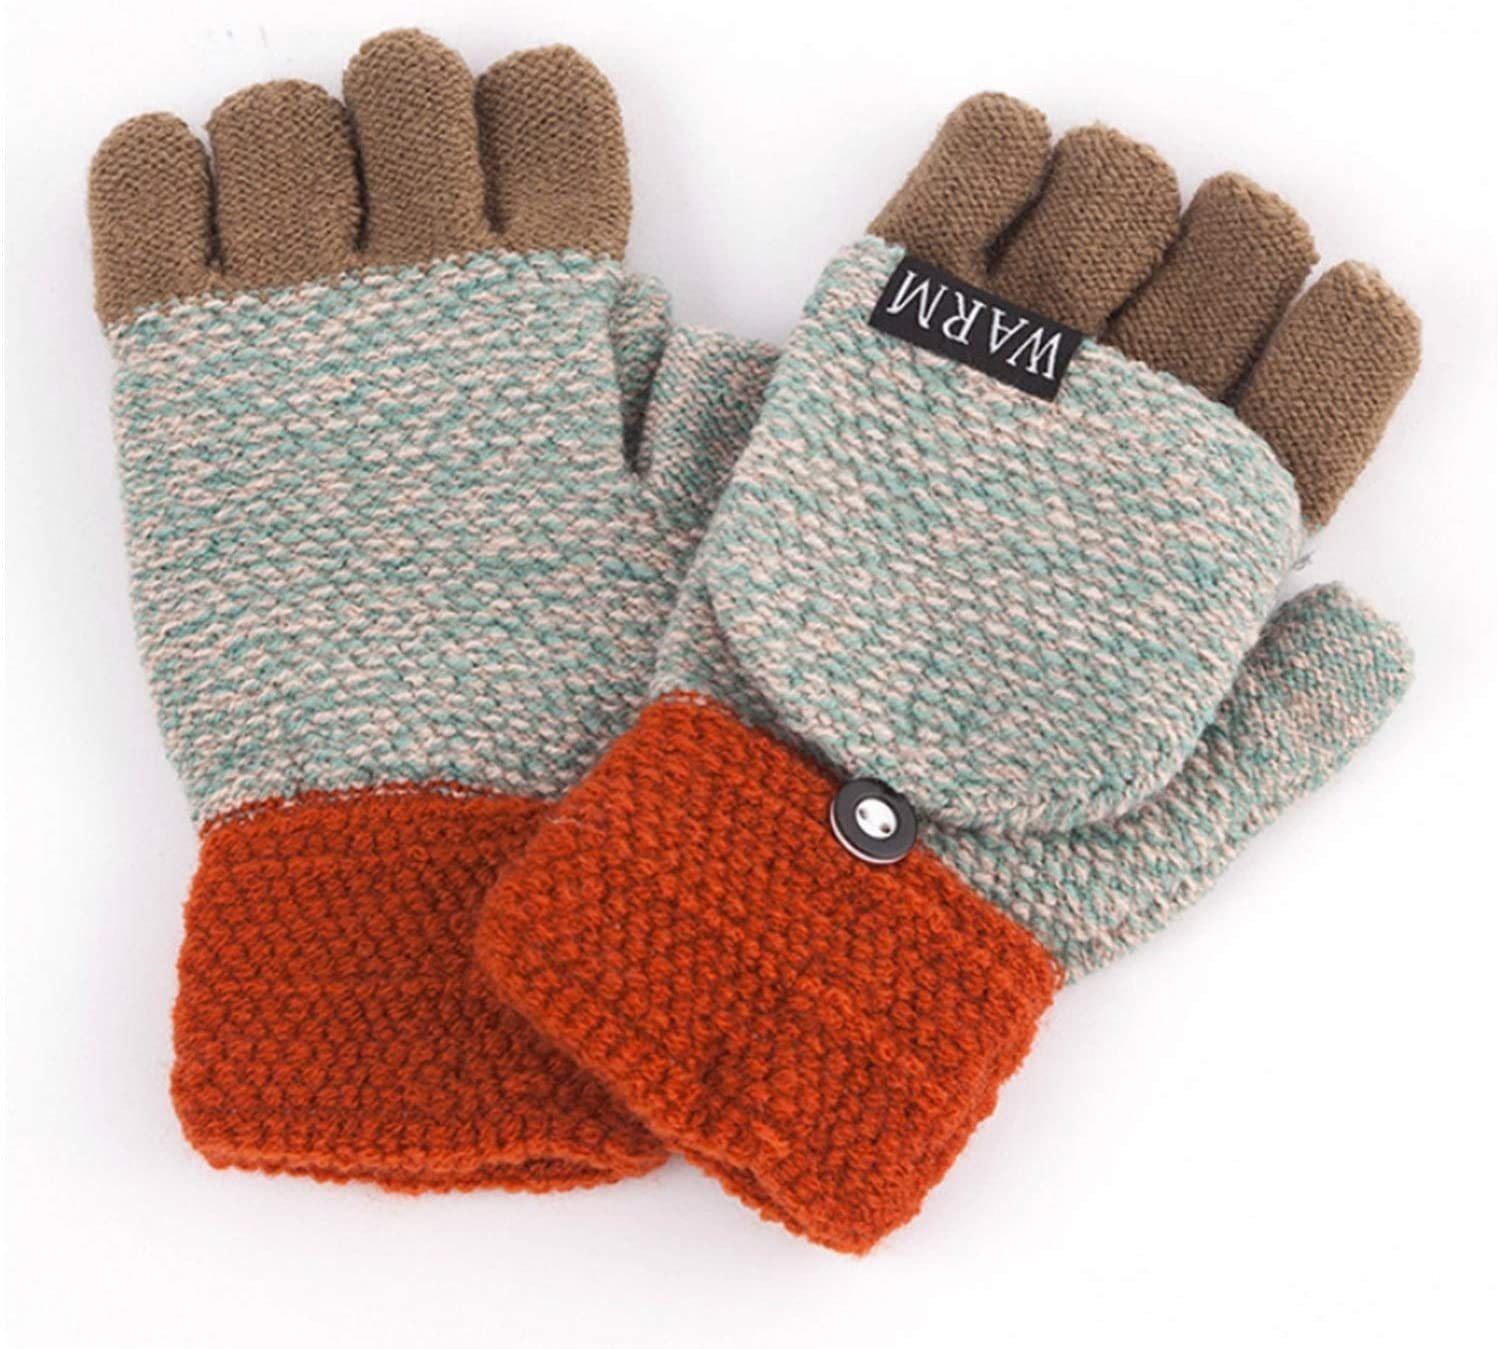 GUYANMAY Lace Gloves Winter Warm Thickening Wool Gloves Knitted Flip Fingerless Flexible Exposed Finger Thick Gloves Mittens Men Women Glove (Color : 6)